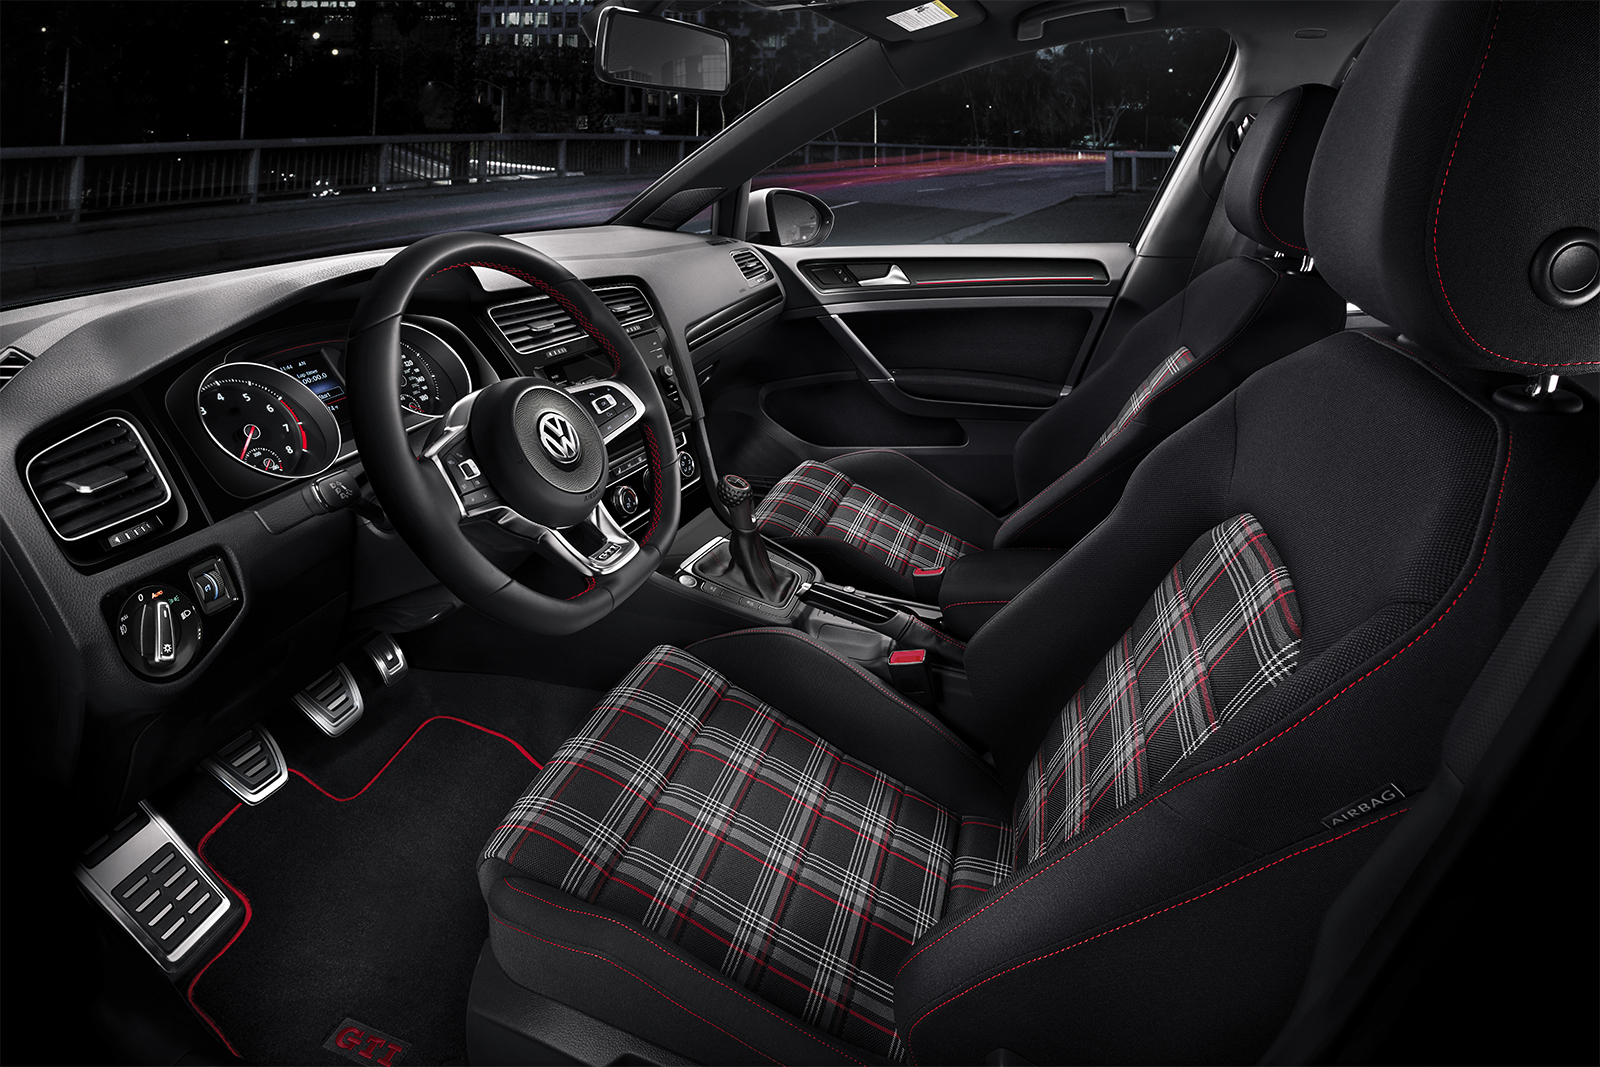 El divertido interior del Golf GTI